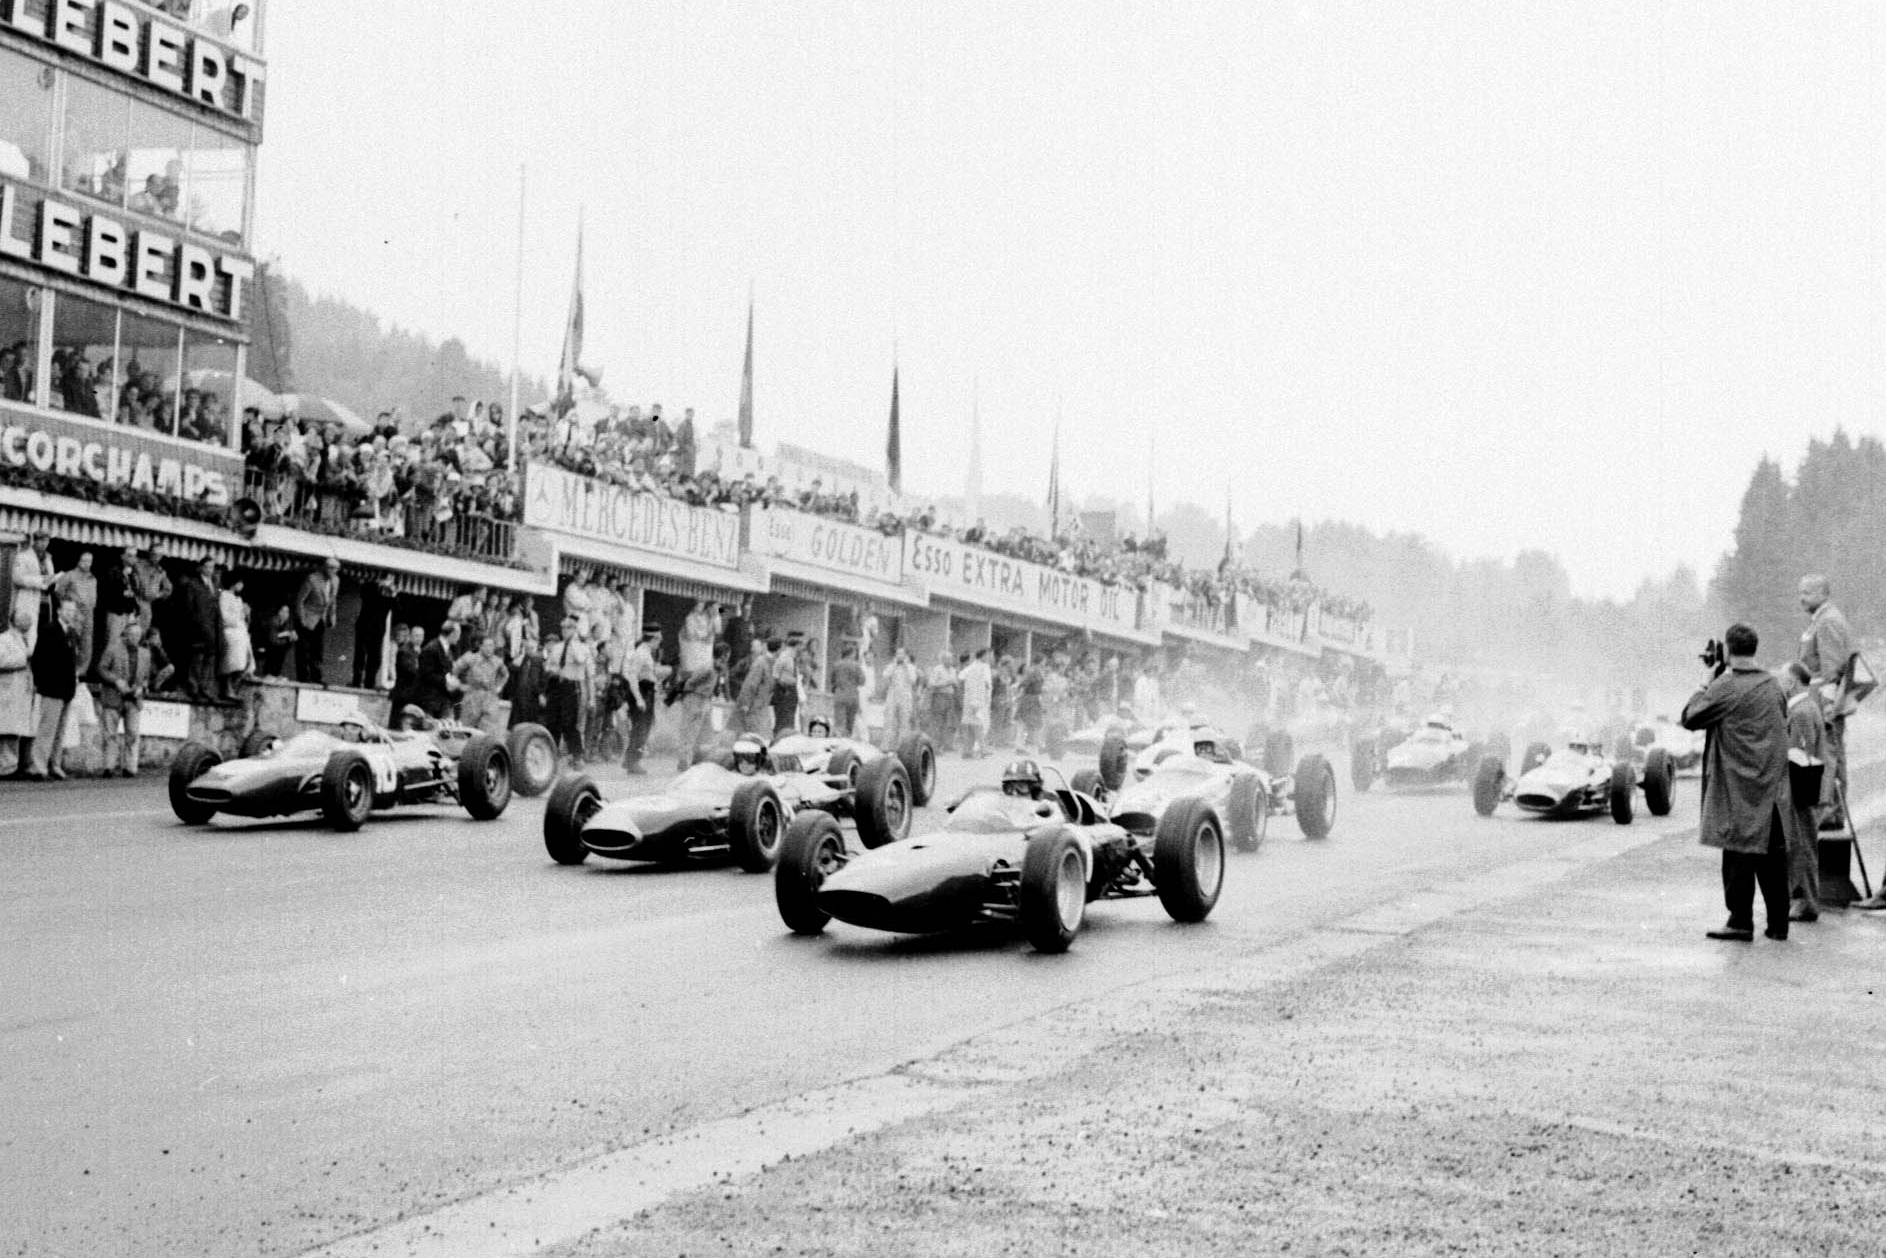 Graham Hill (BRM P57), Dan Gurney (Brabham BT7 Climax) and Willy Mairesse (Ferrari 156) lead at the start of the race.